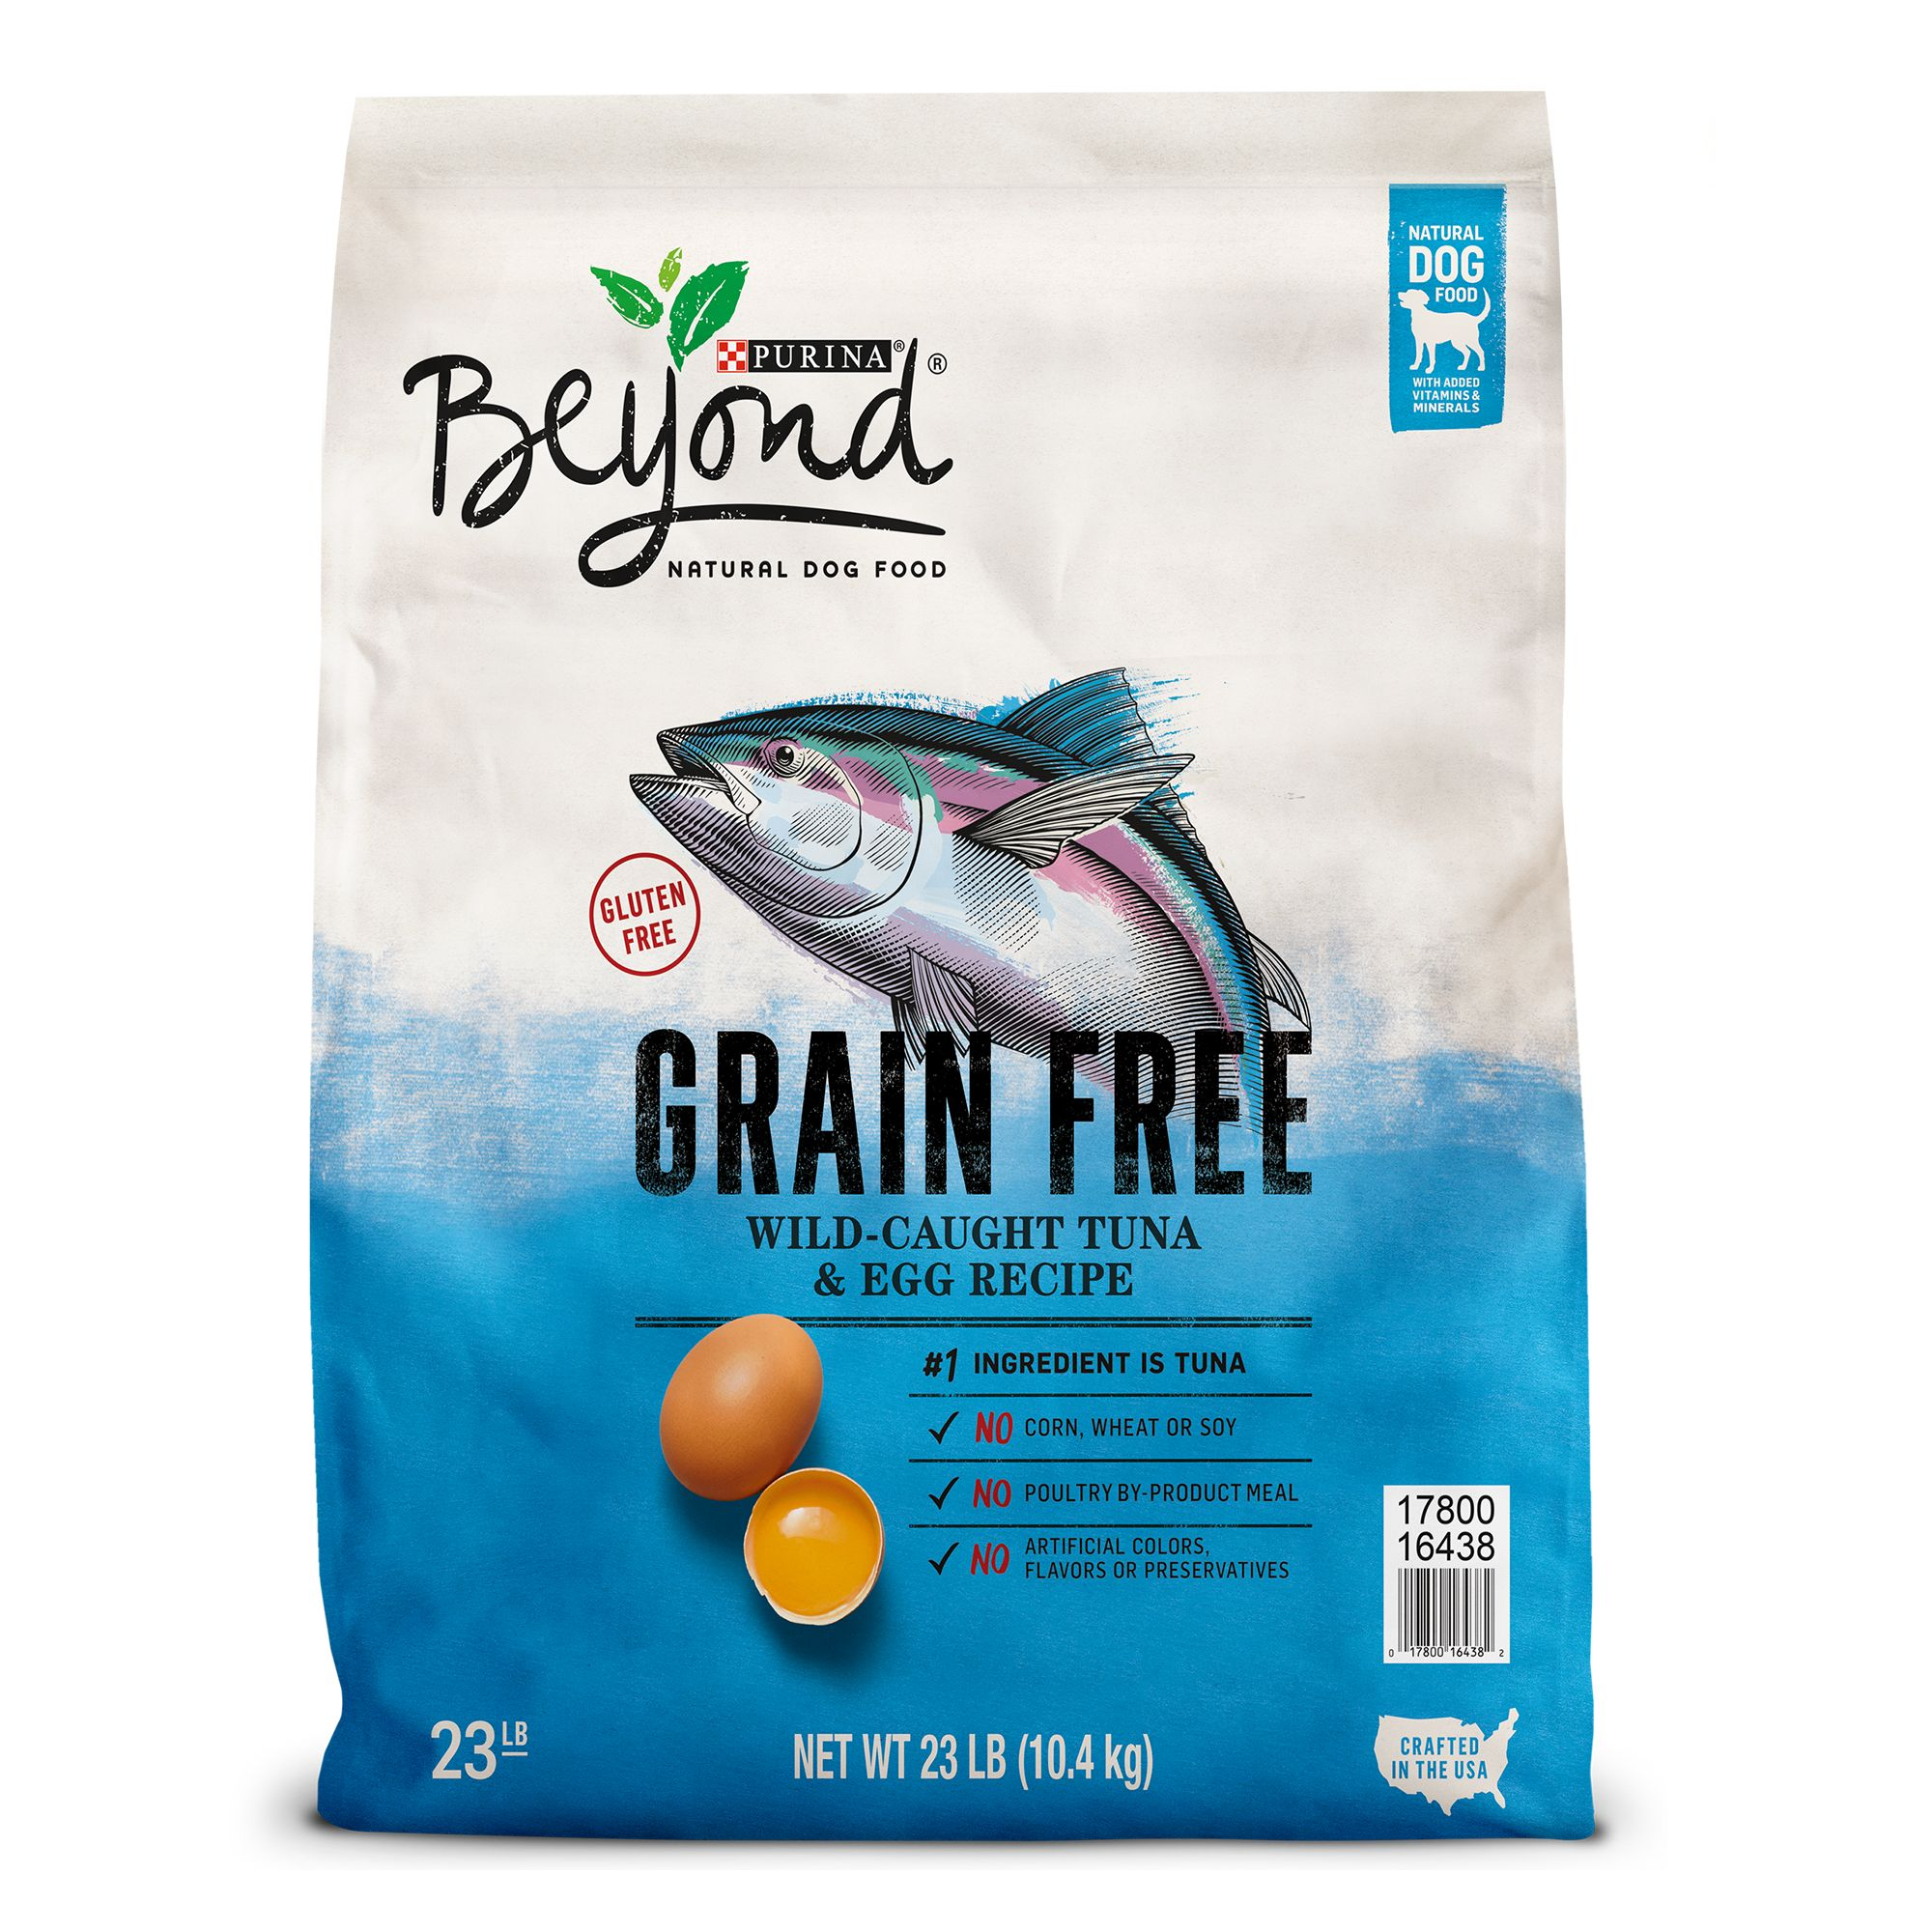 Purina® Beyond Dog Food - Natural, Grain Free, Gluten Free, Tuna and Egg size: 23 Lb 5226180